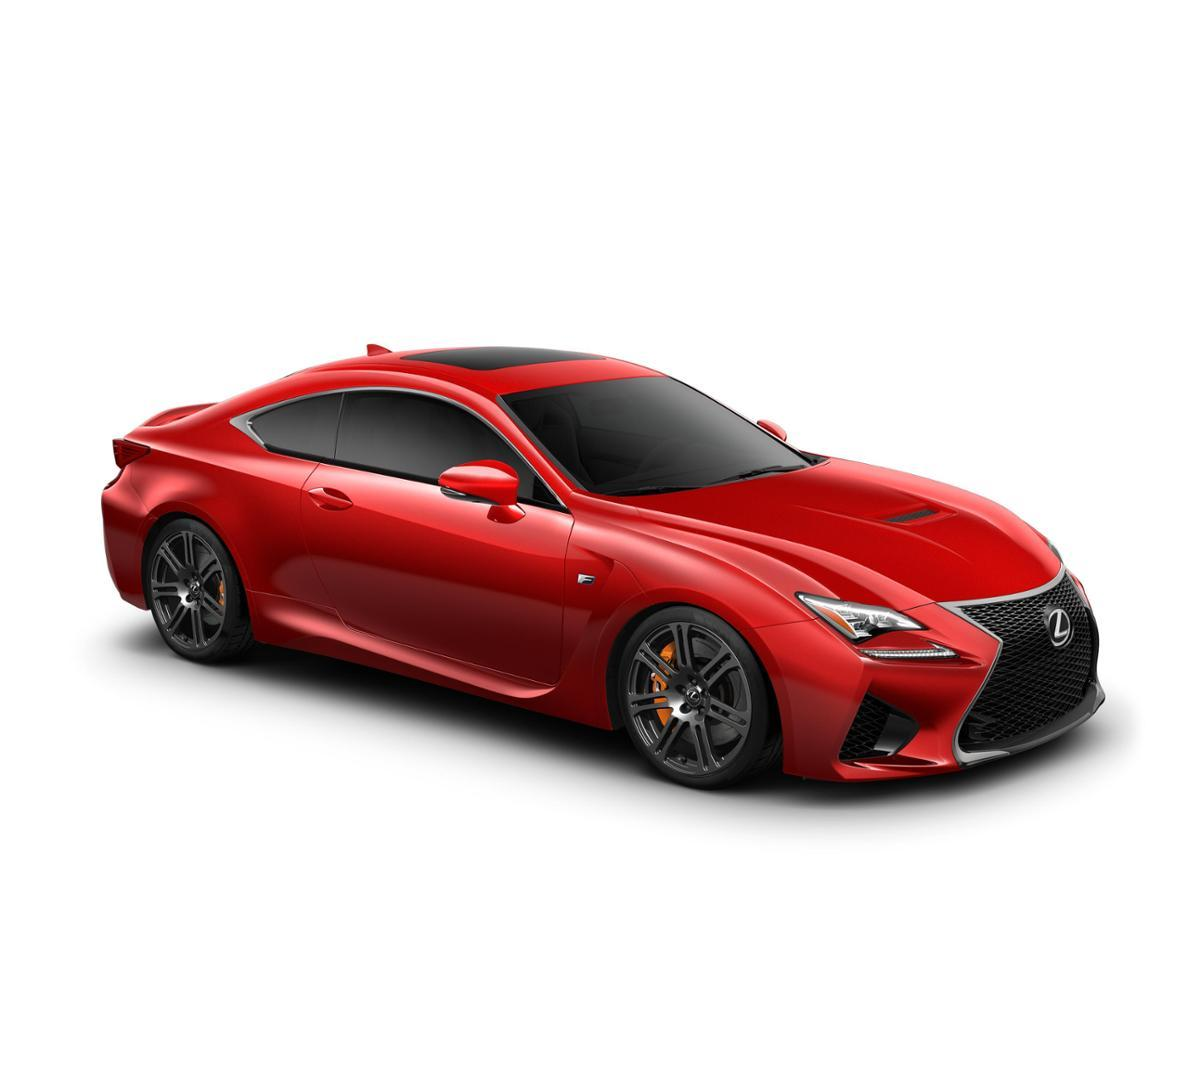 2017 Lexus Rc Exterior: 2017 Lexus RC F For Sale In San Antonio